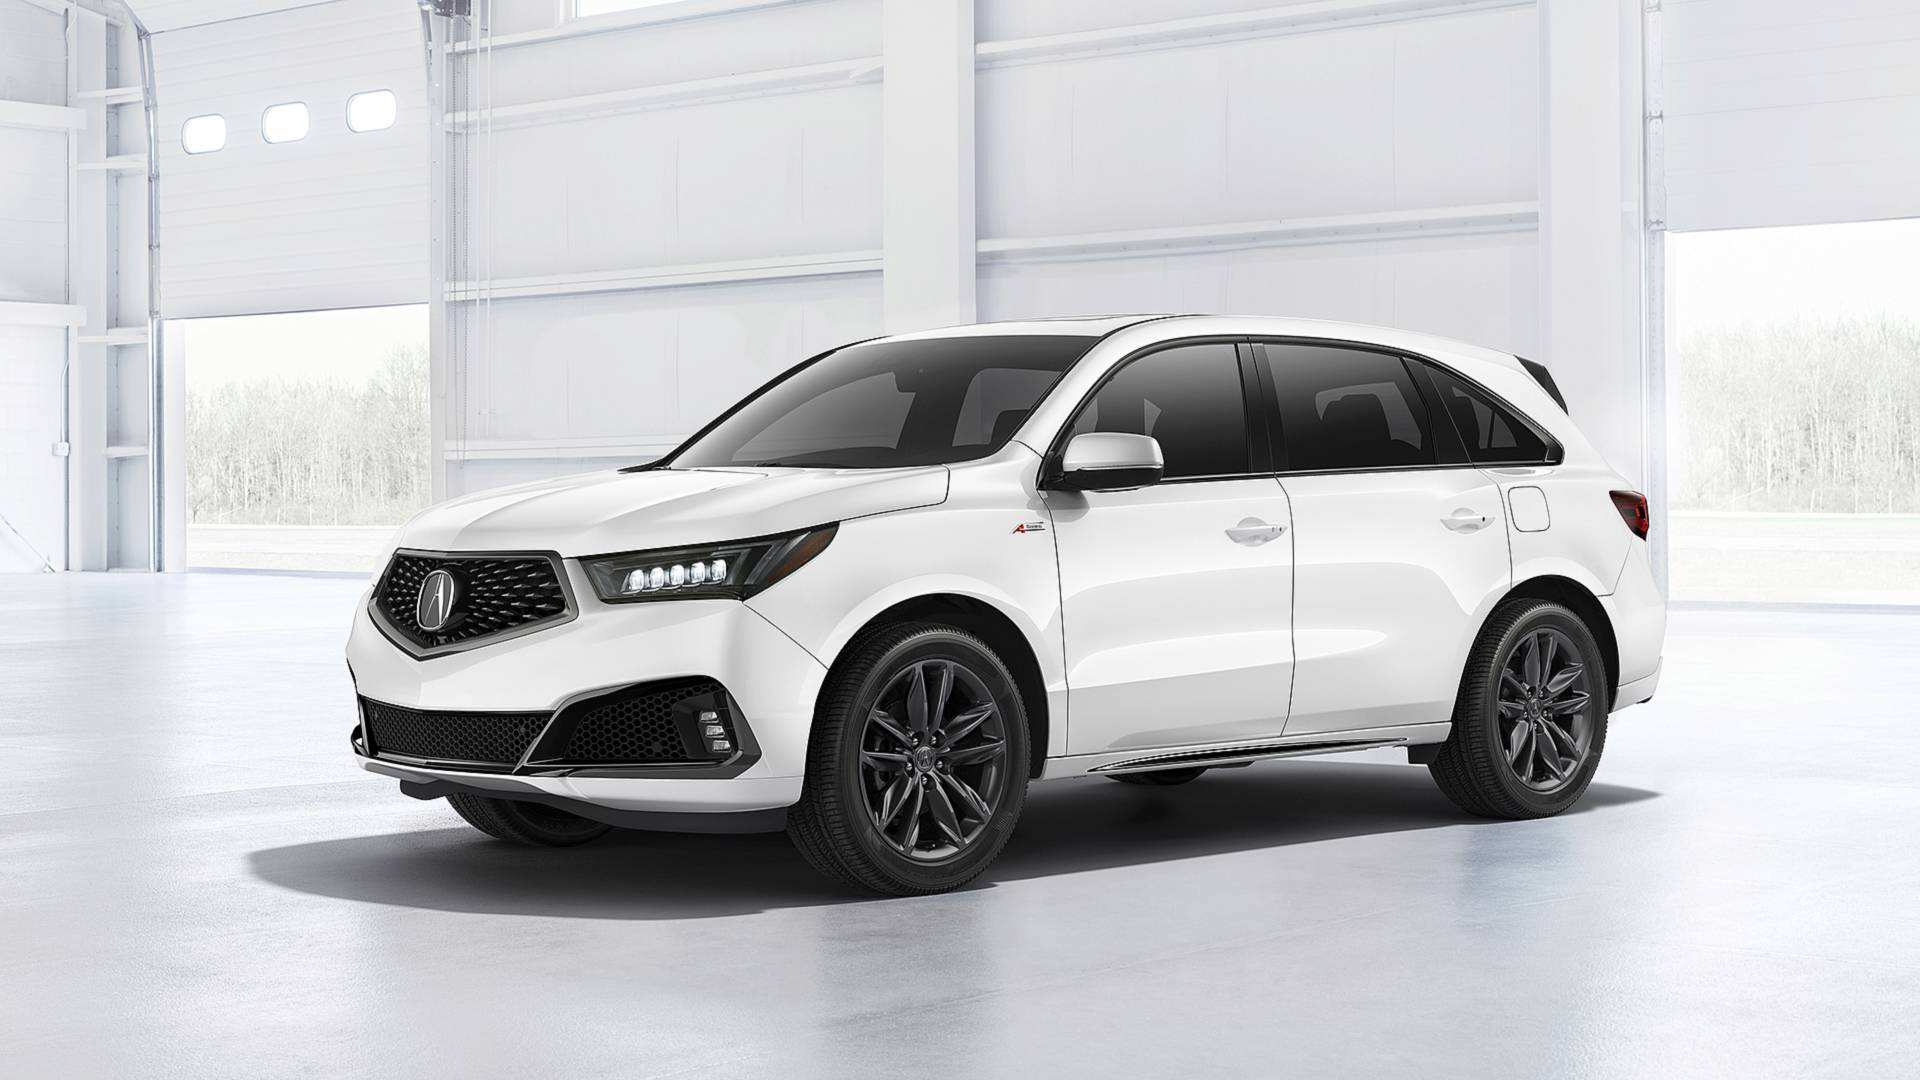 32 Concept of Best Acura Rdx 2019 Gunmetal Review And Price New Review by Best Acura Rdx 2019 Gunmetal Review And Price